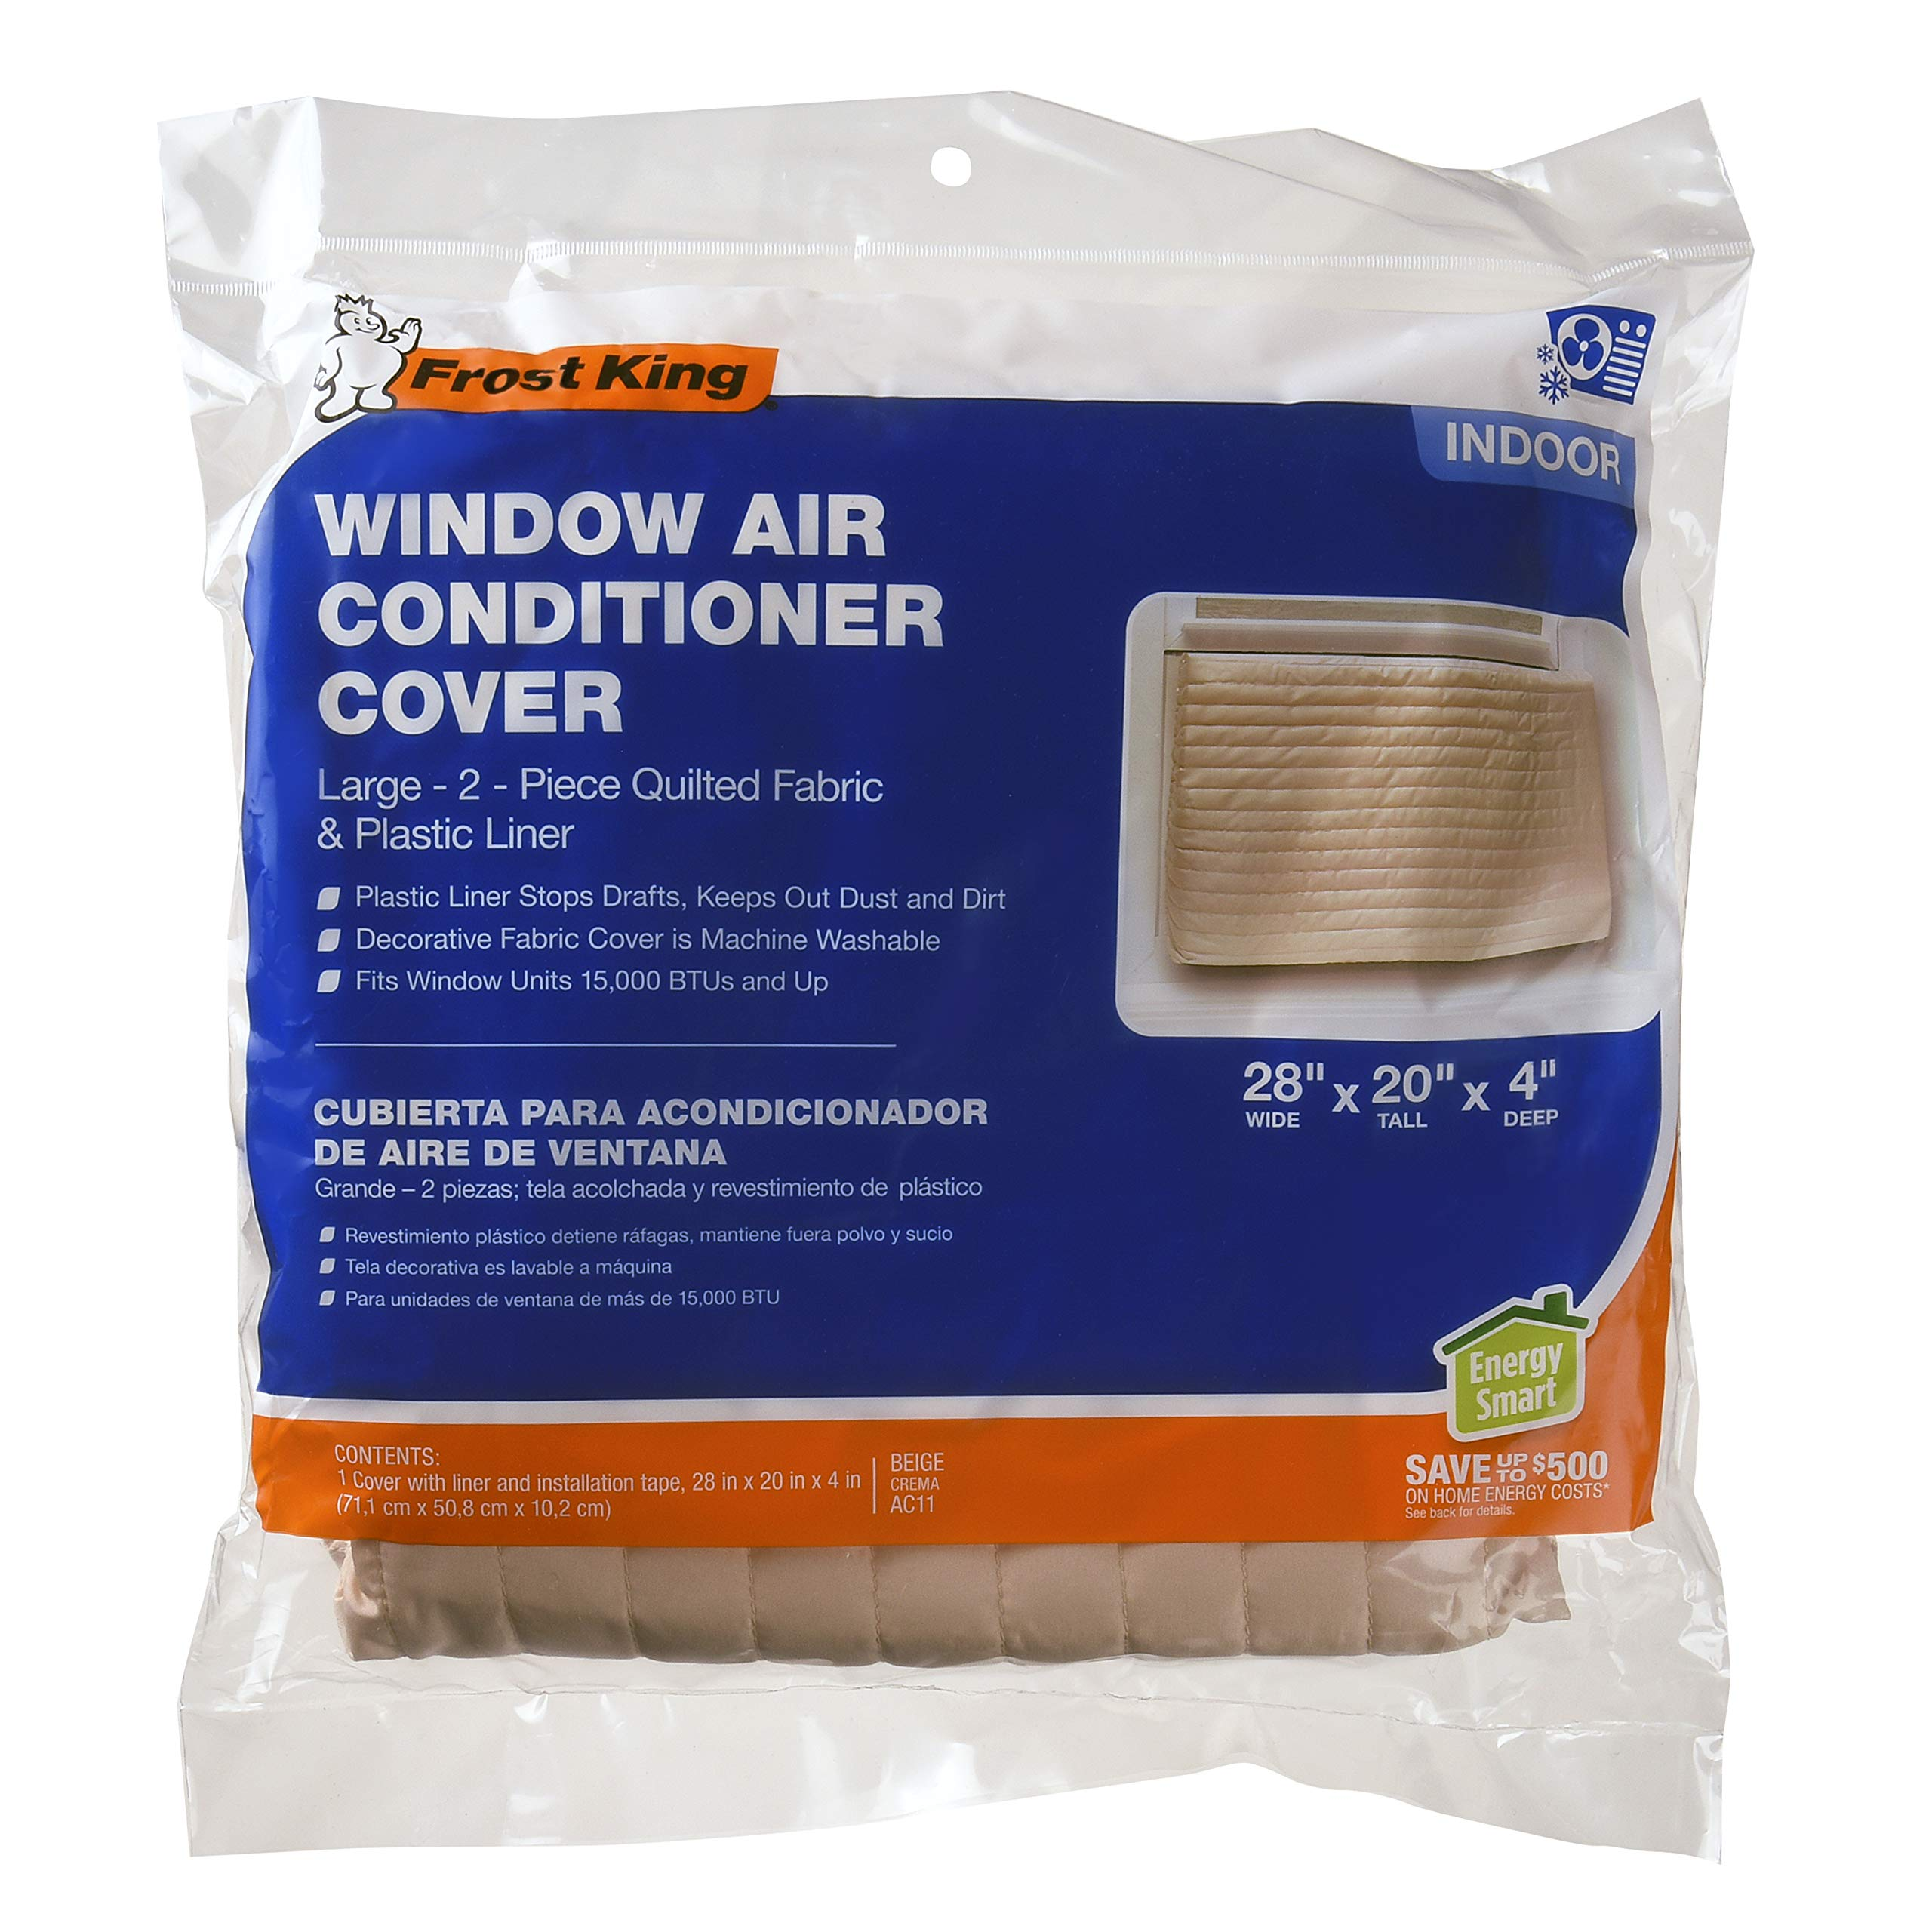 Frost King 2-Piece Quilted Indoor Air Conditioner Cover, Large, fits units up to 20'' x 28''